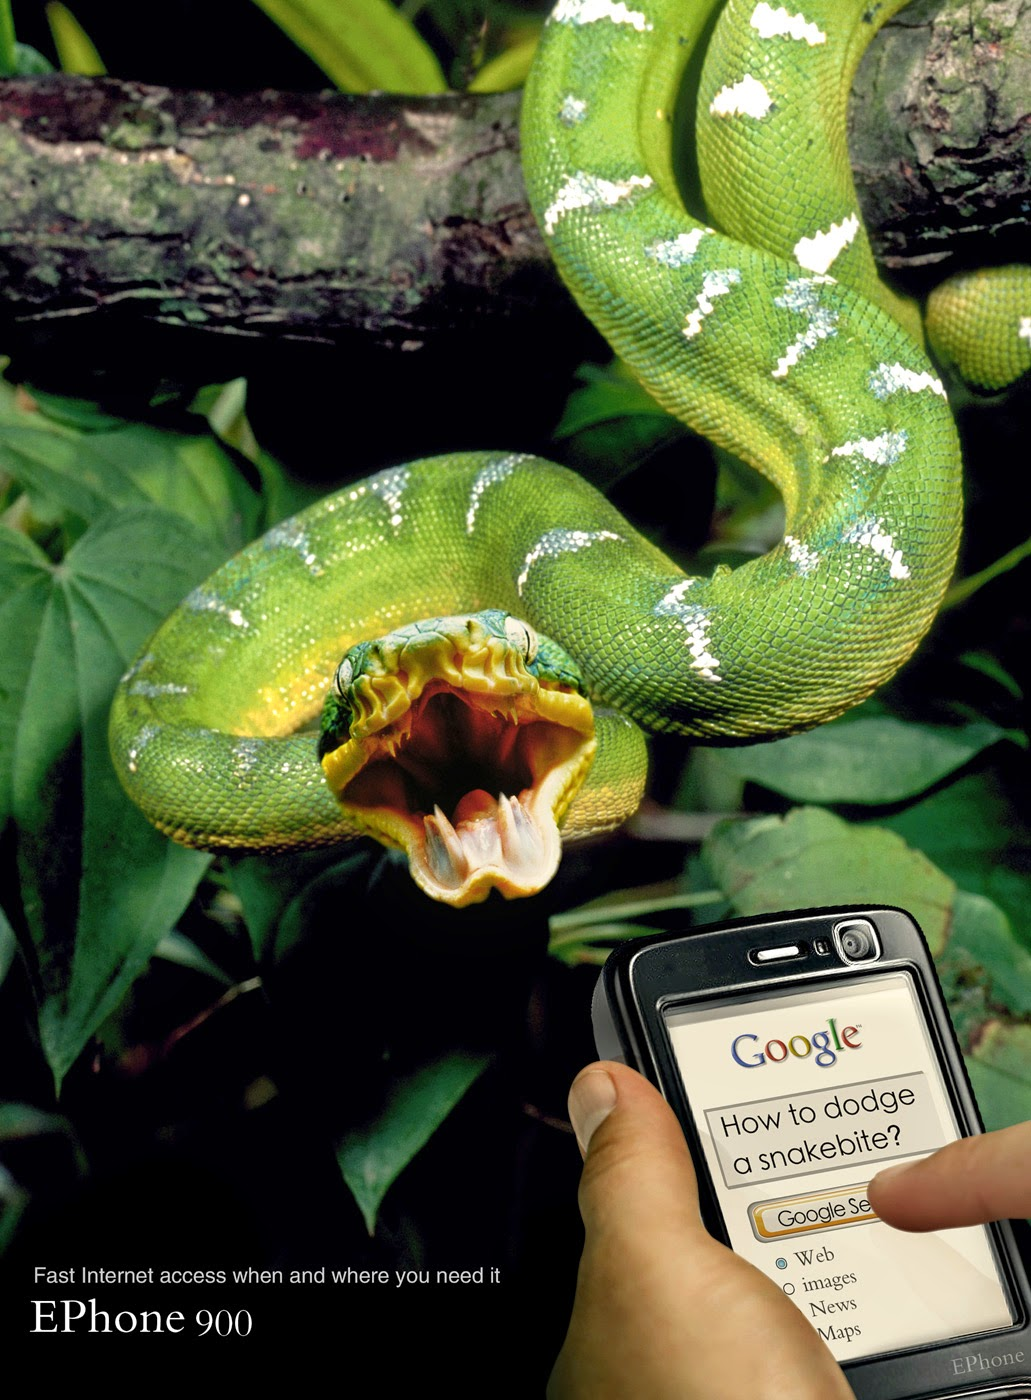 EPhone900-Snakebite